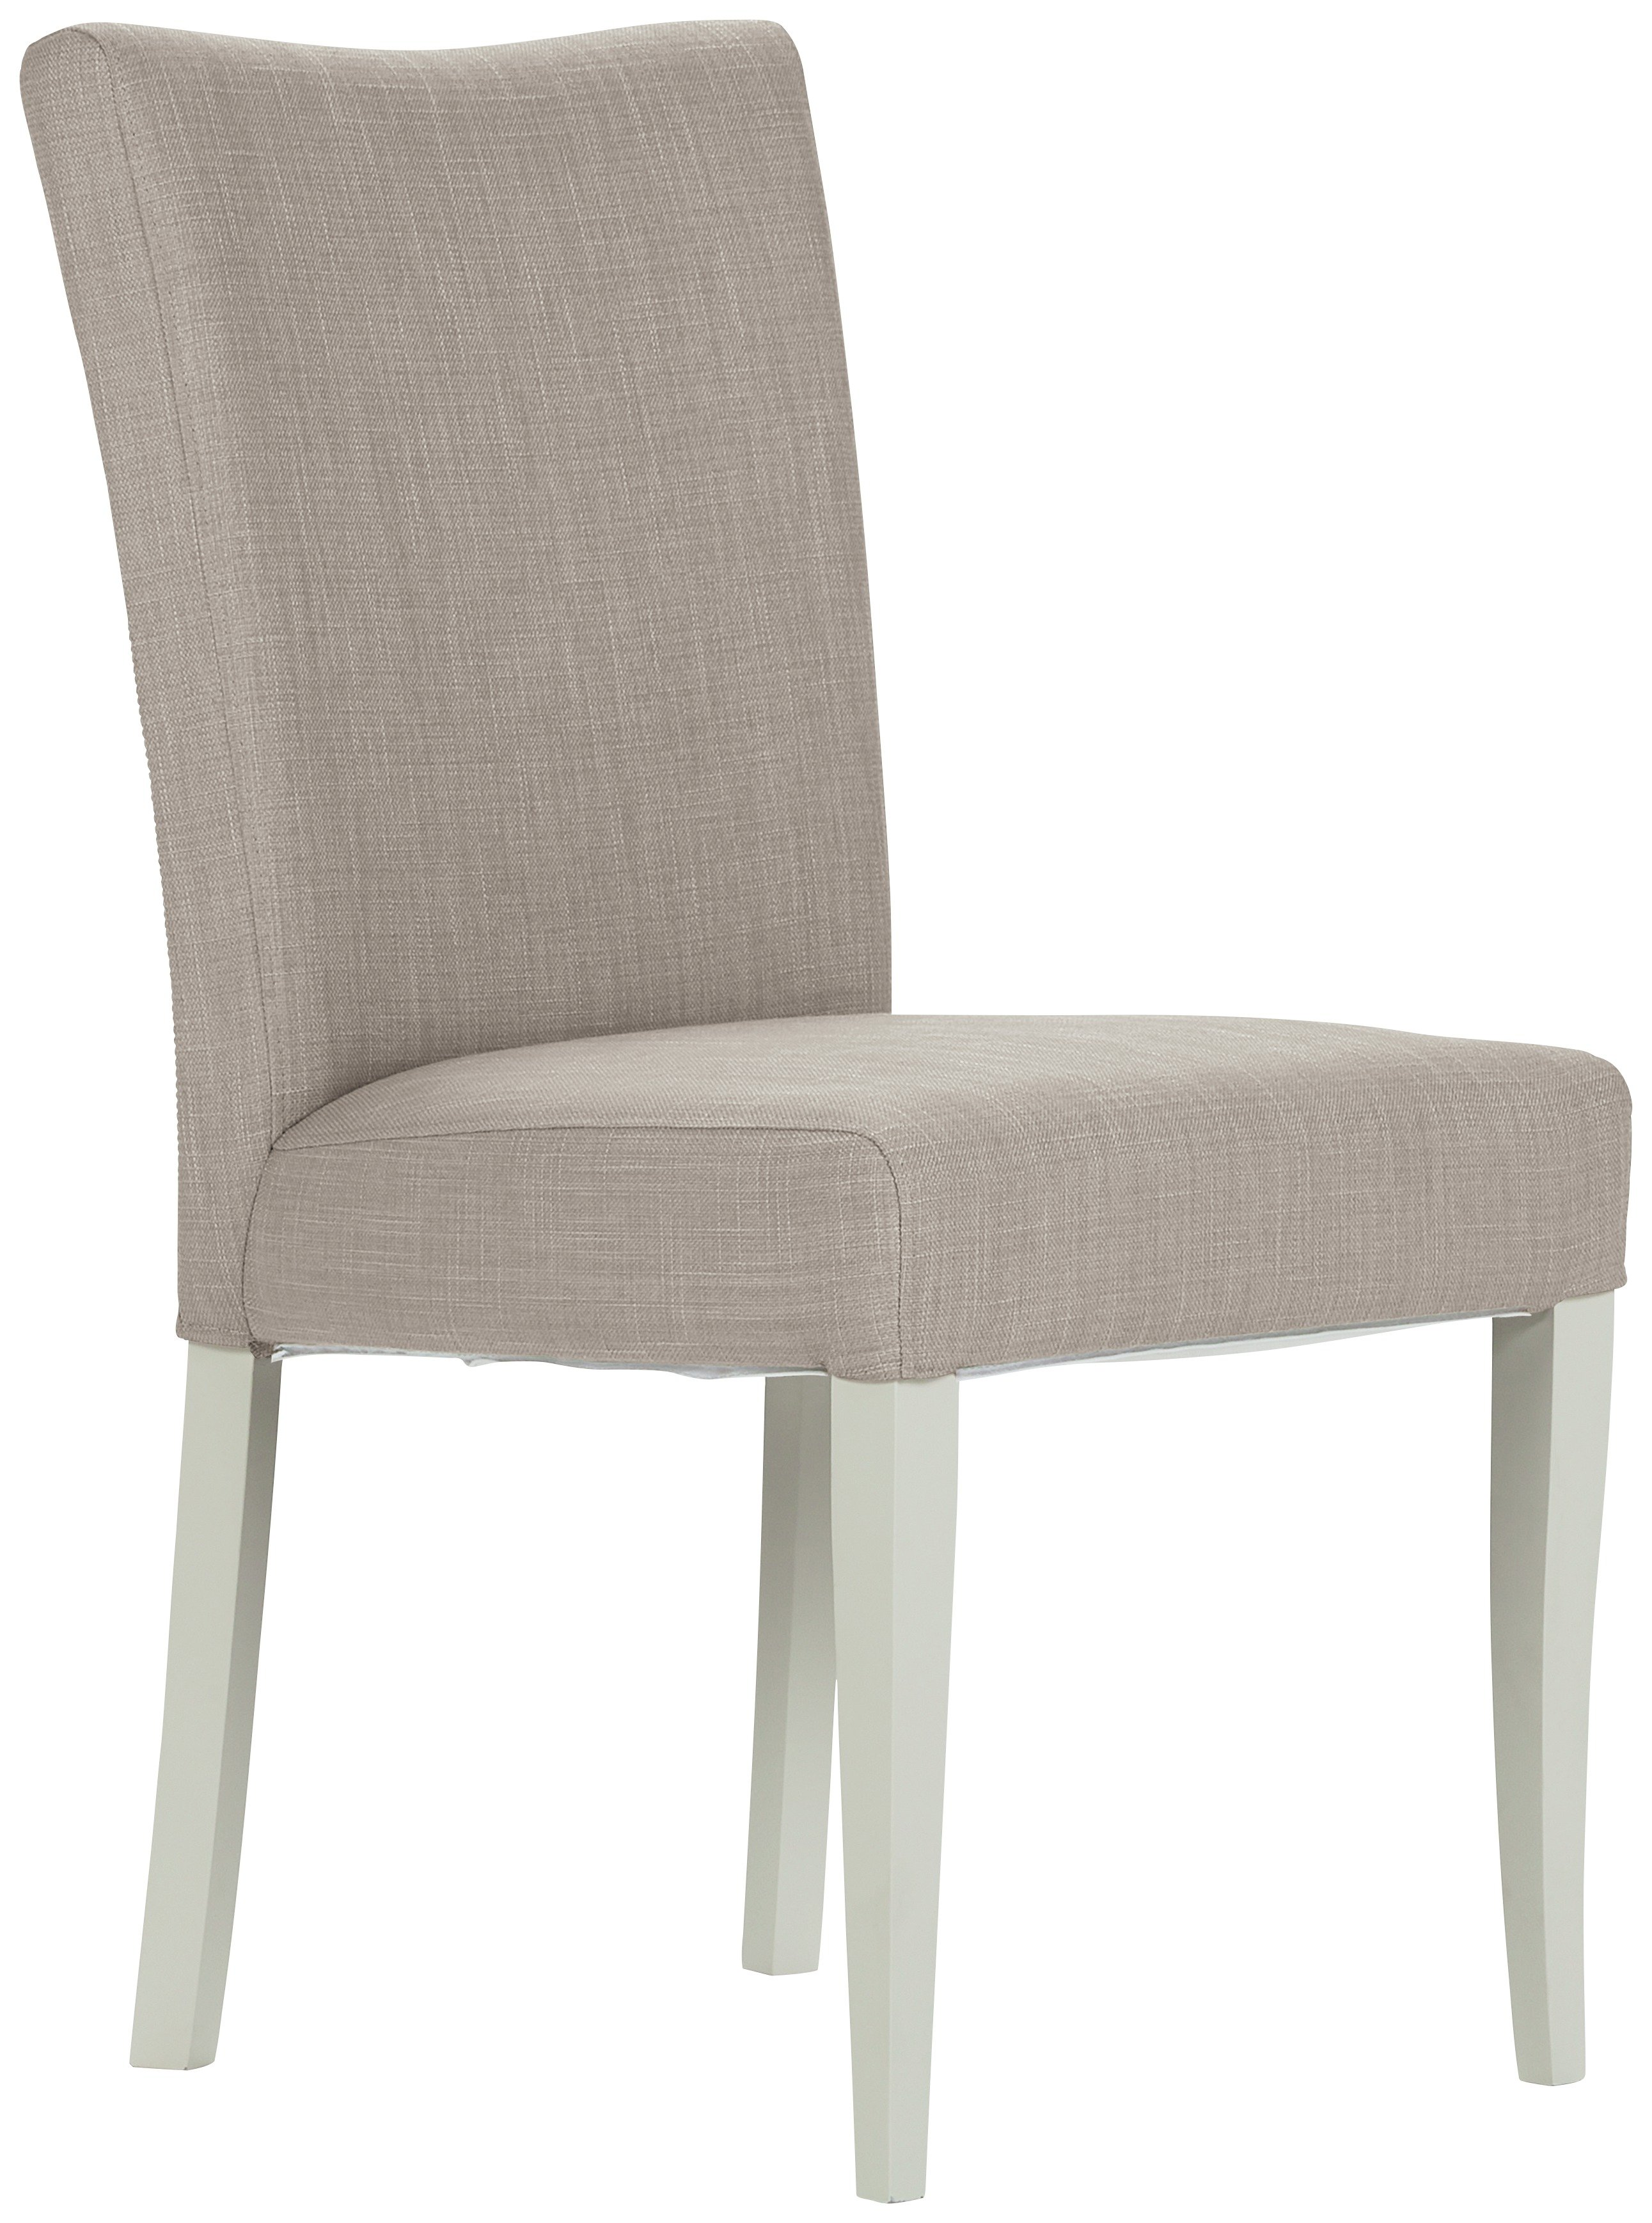 Buy Schreiber Pair of Upholstered Beech Dining Chairs  : 4999650RZ002AWebampw570amph513 from www.argos.co.uk size 570 x 513 jpeg 16kB